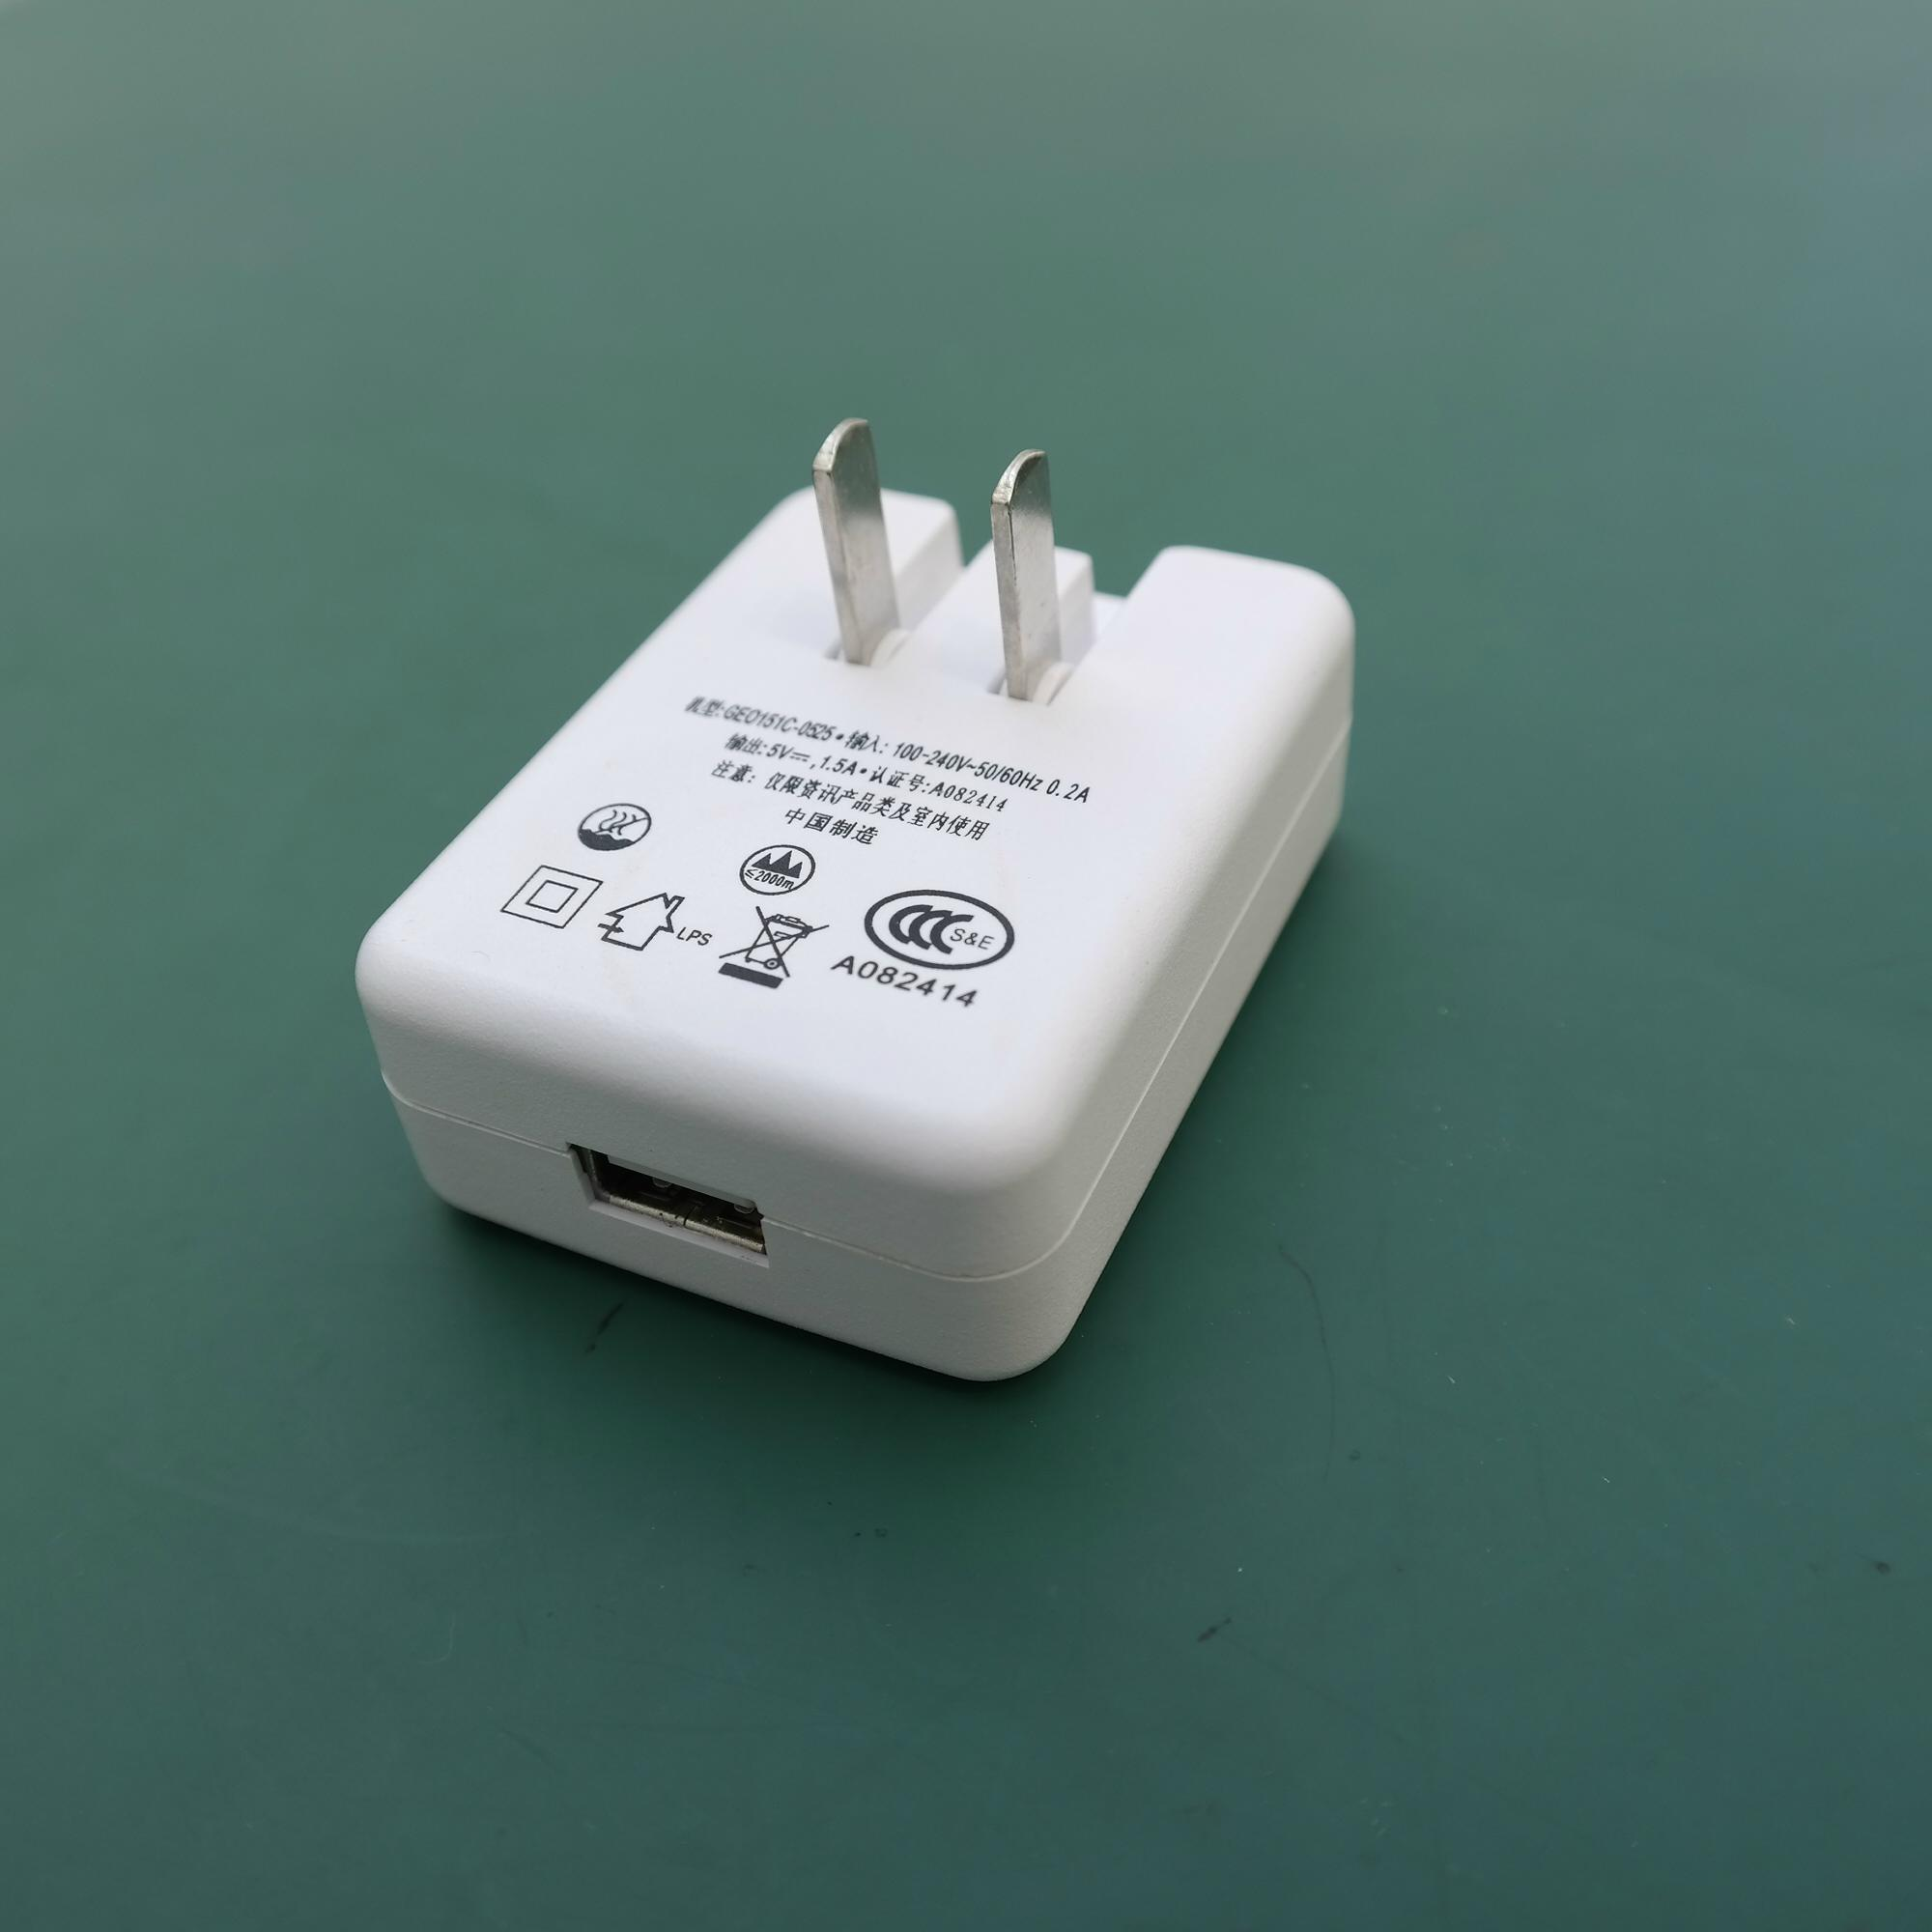 Sell USB Battery charger 5V0.5A Model:GFP051-0505-1(US plug) 7